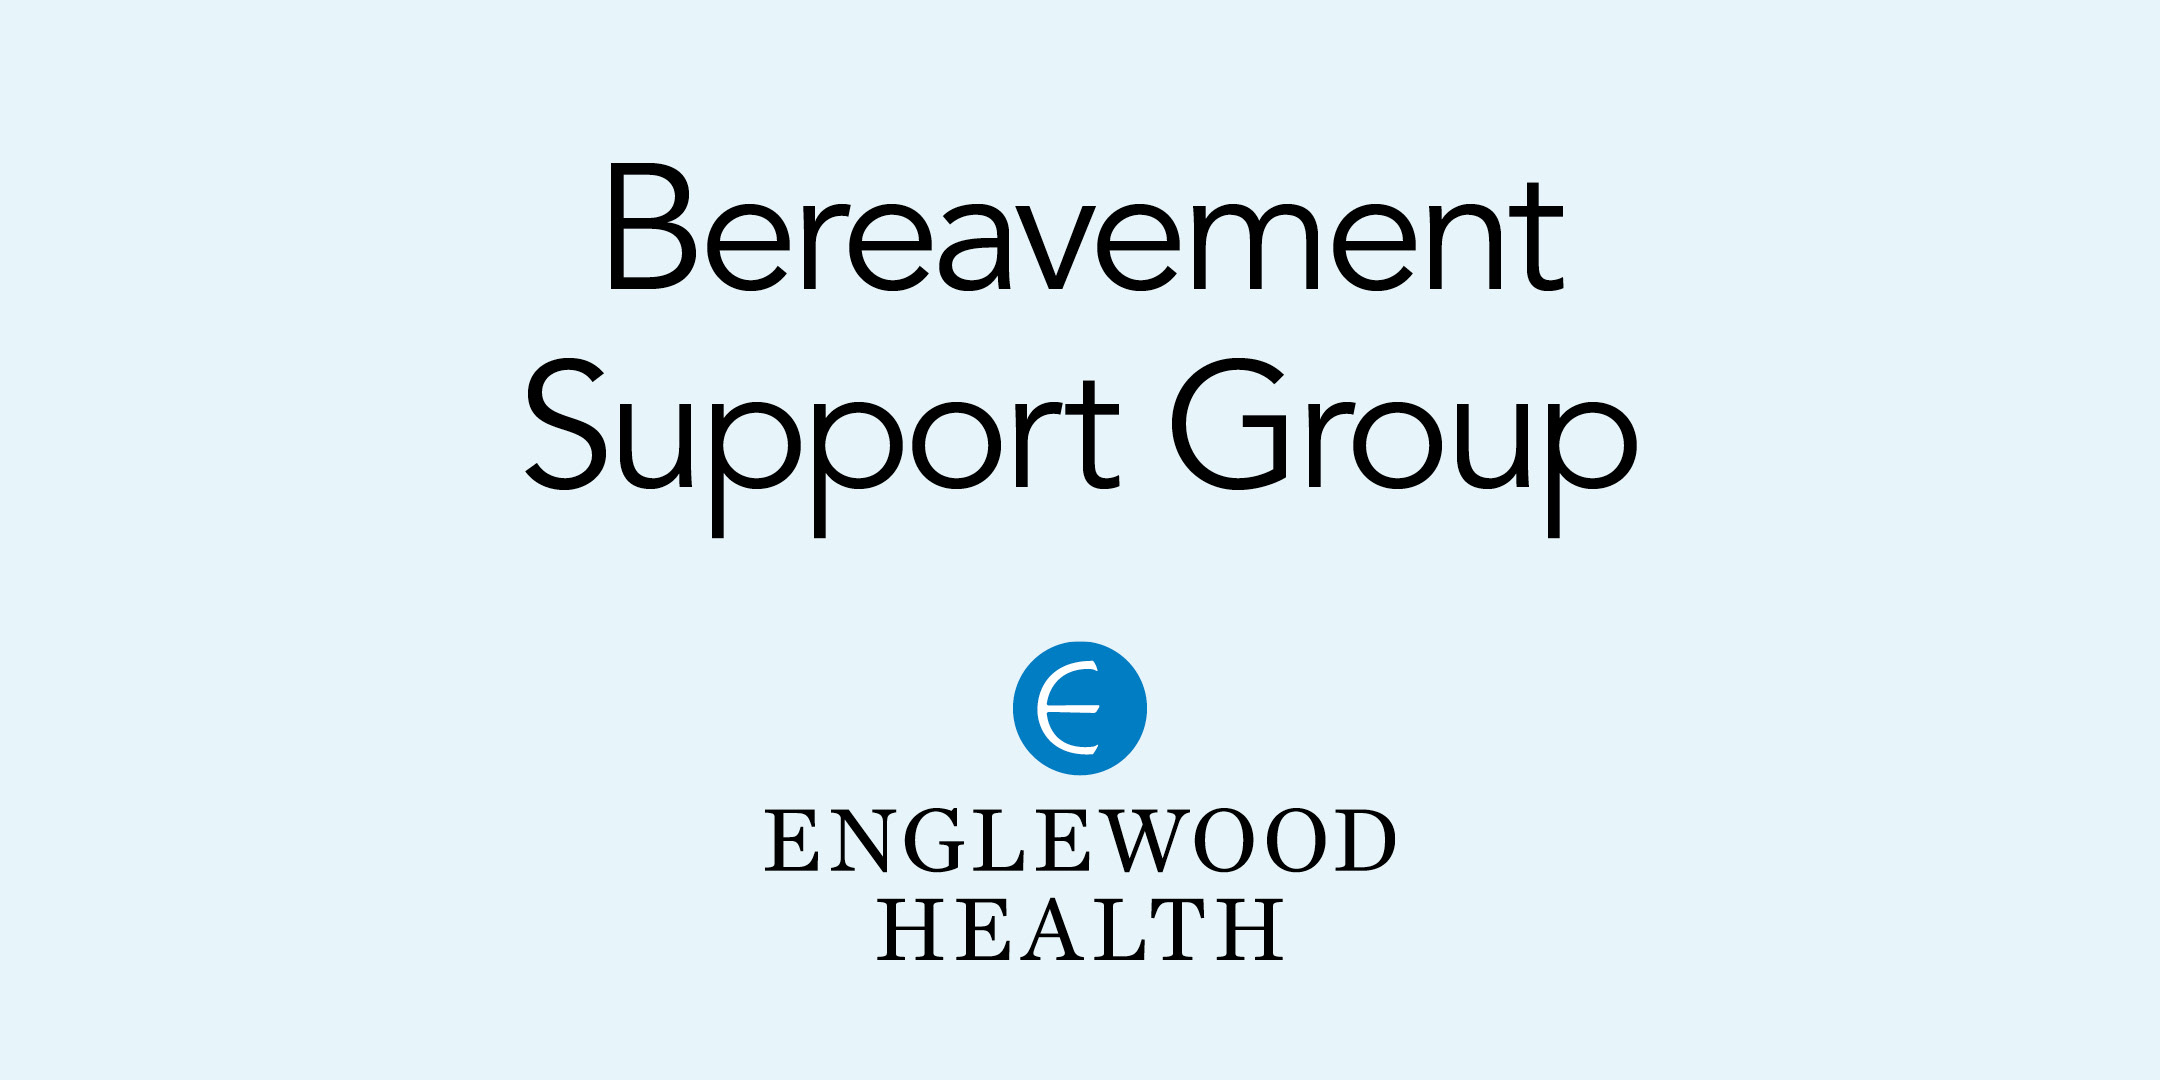 More info: Bereavement Support Group